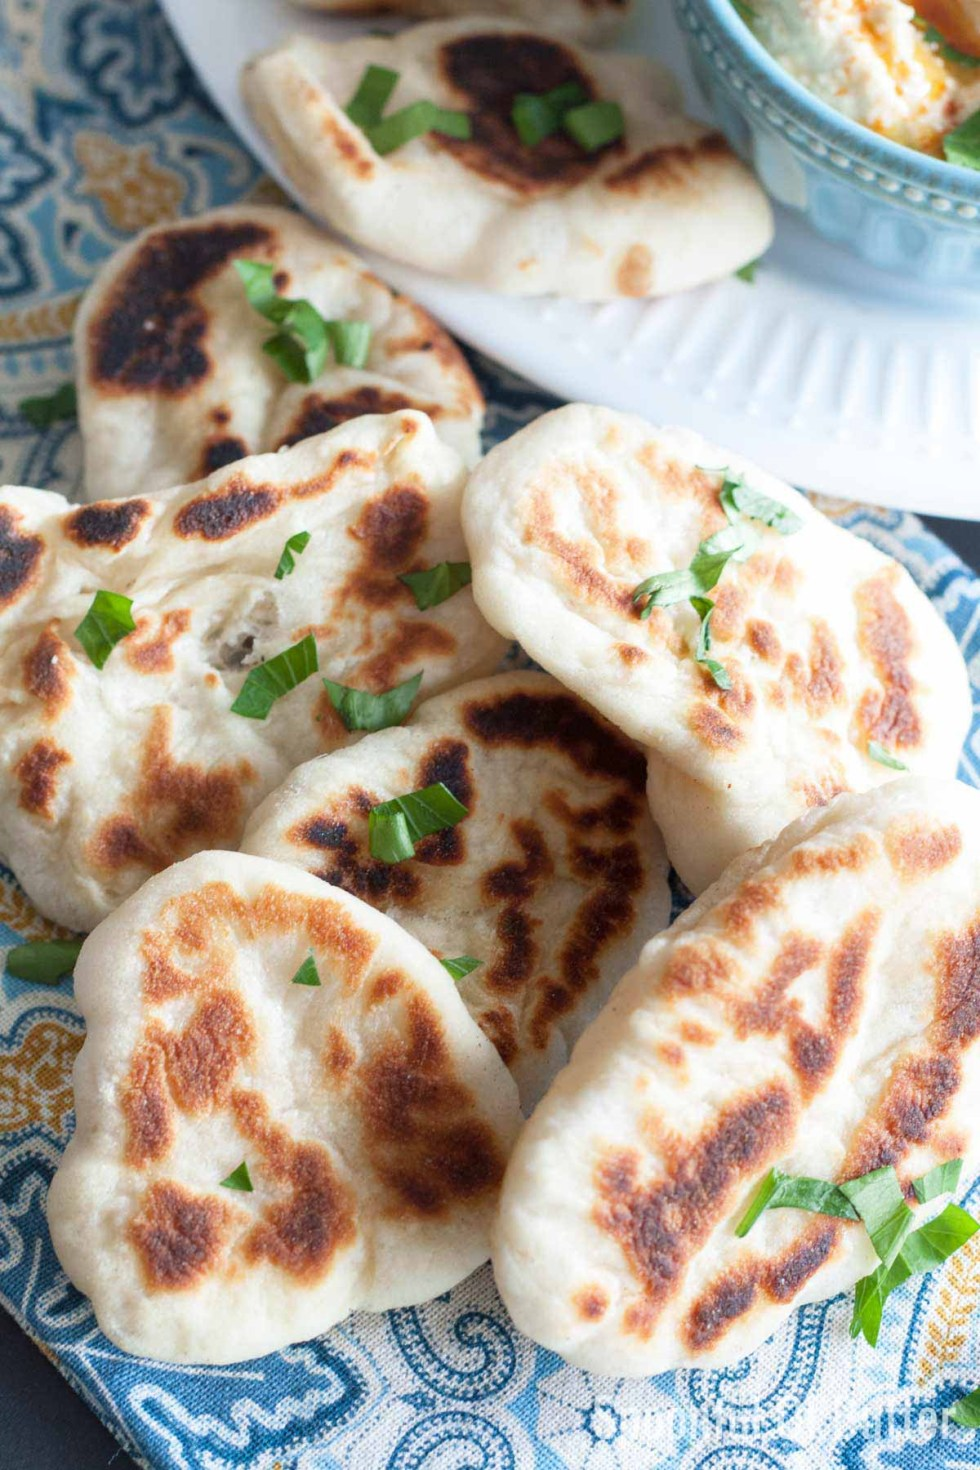 Soft and chewy Naan Dippers. The yogurt in the dough makes these bread flavorful. See those air pockets and char? Yes, they're quite awesome, especially with your favorite curry and dip. | www.SpoonfulOfButter.com